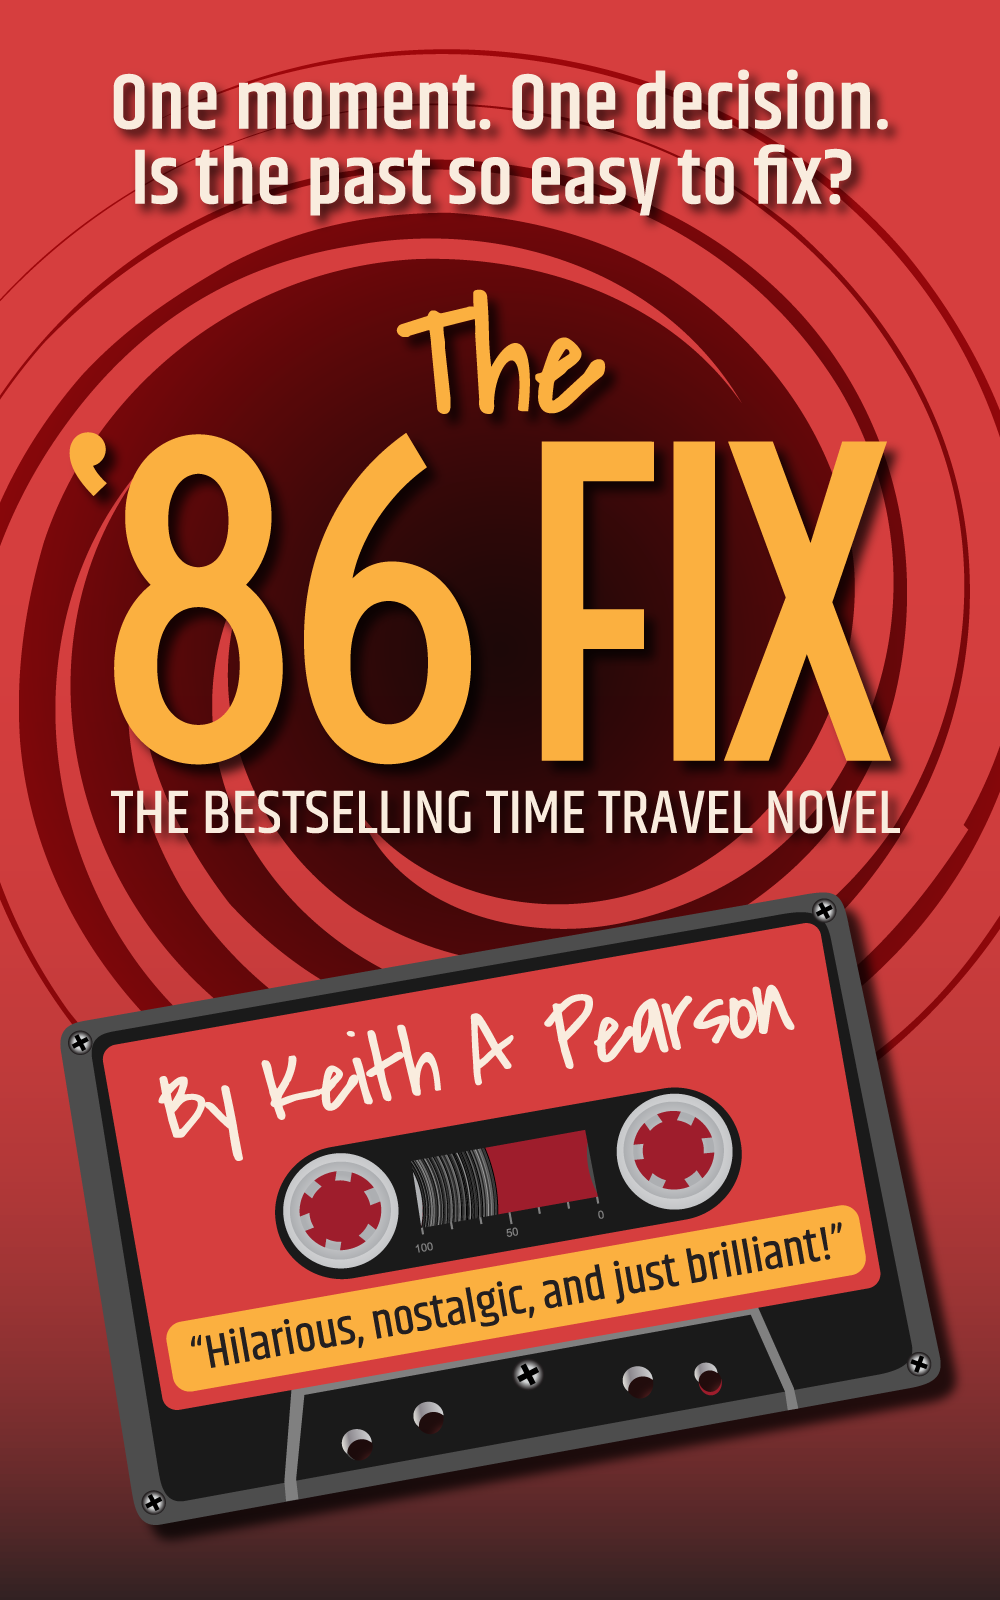 Keith A. Pearson - The '86 Fix Book